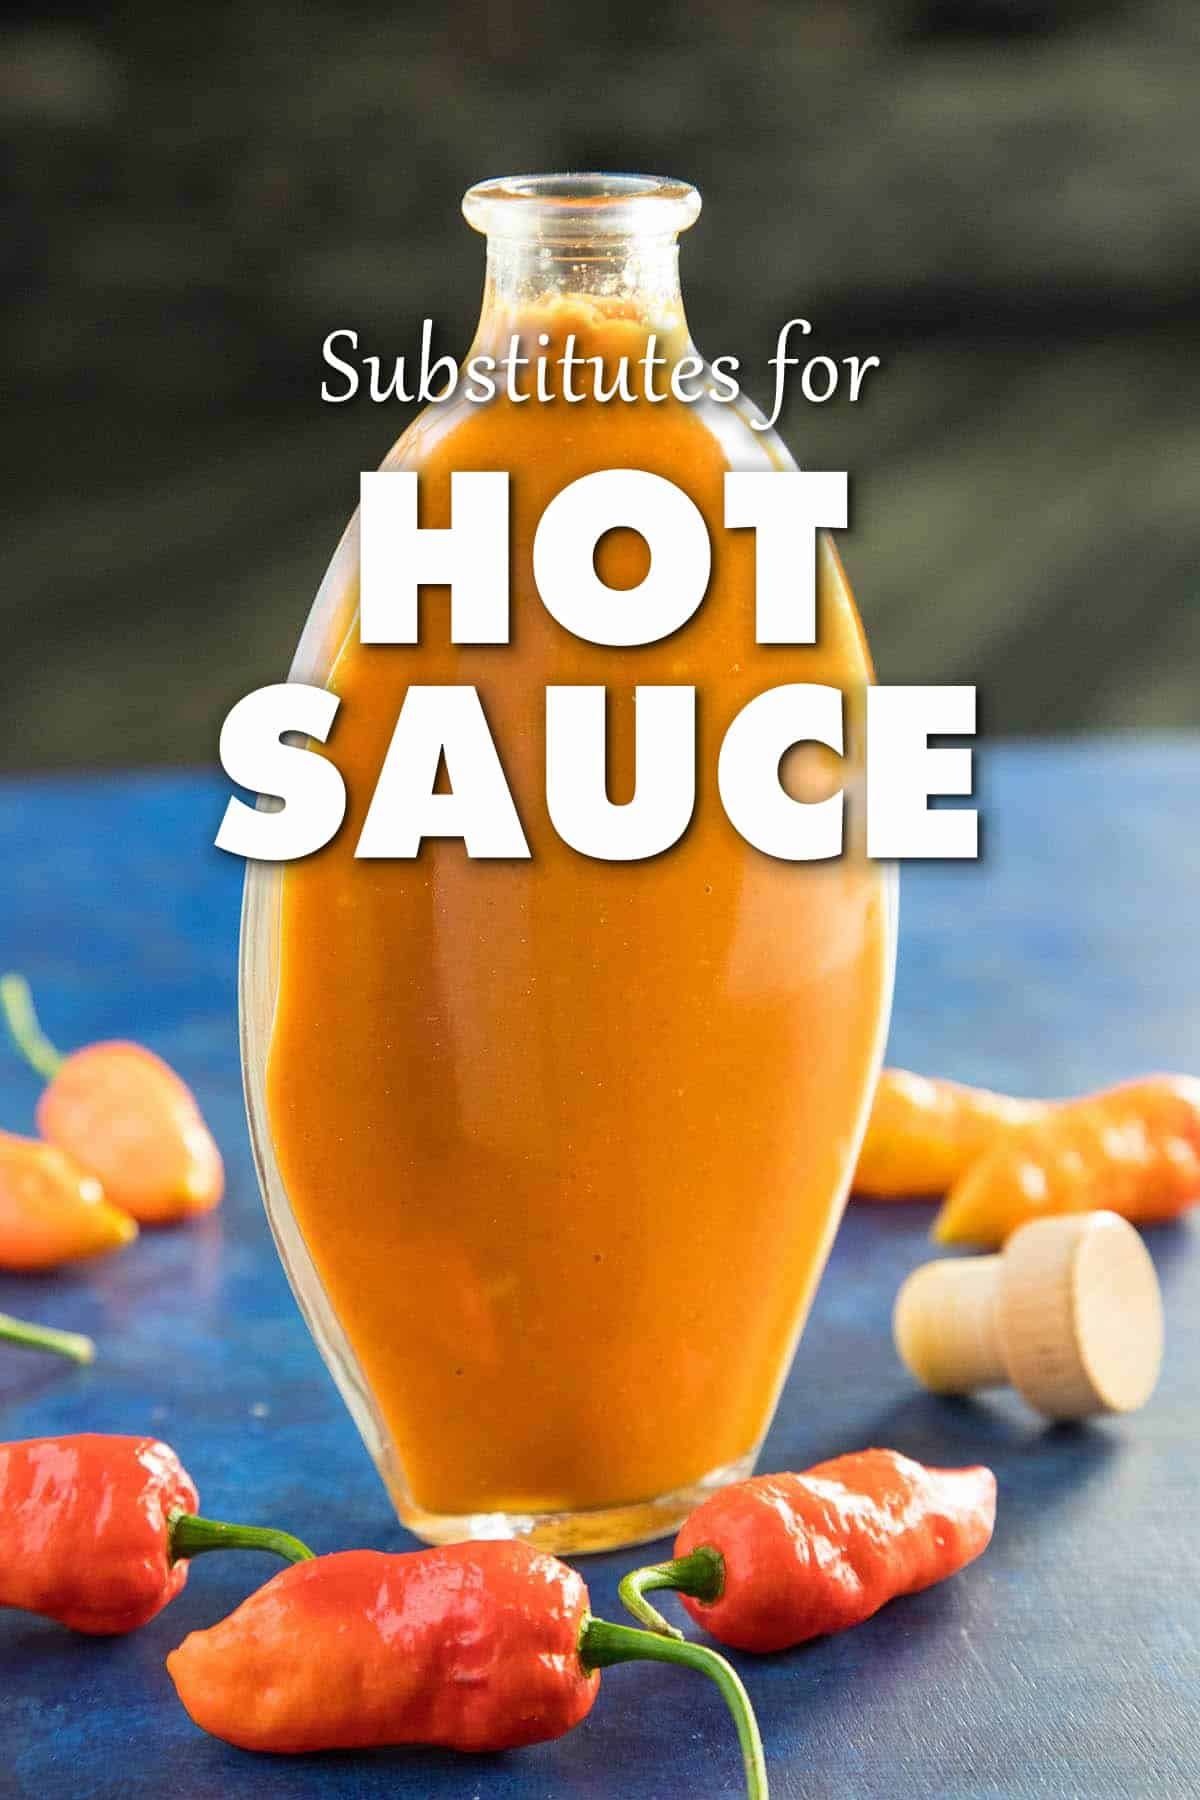 Hot Sauce Substitute – What Should I Use?